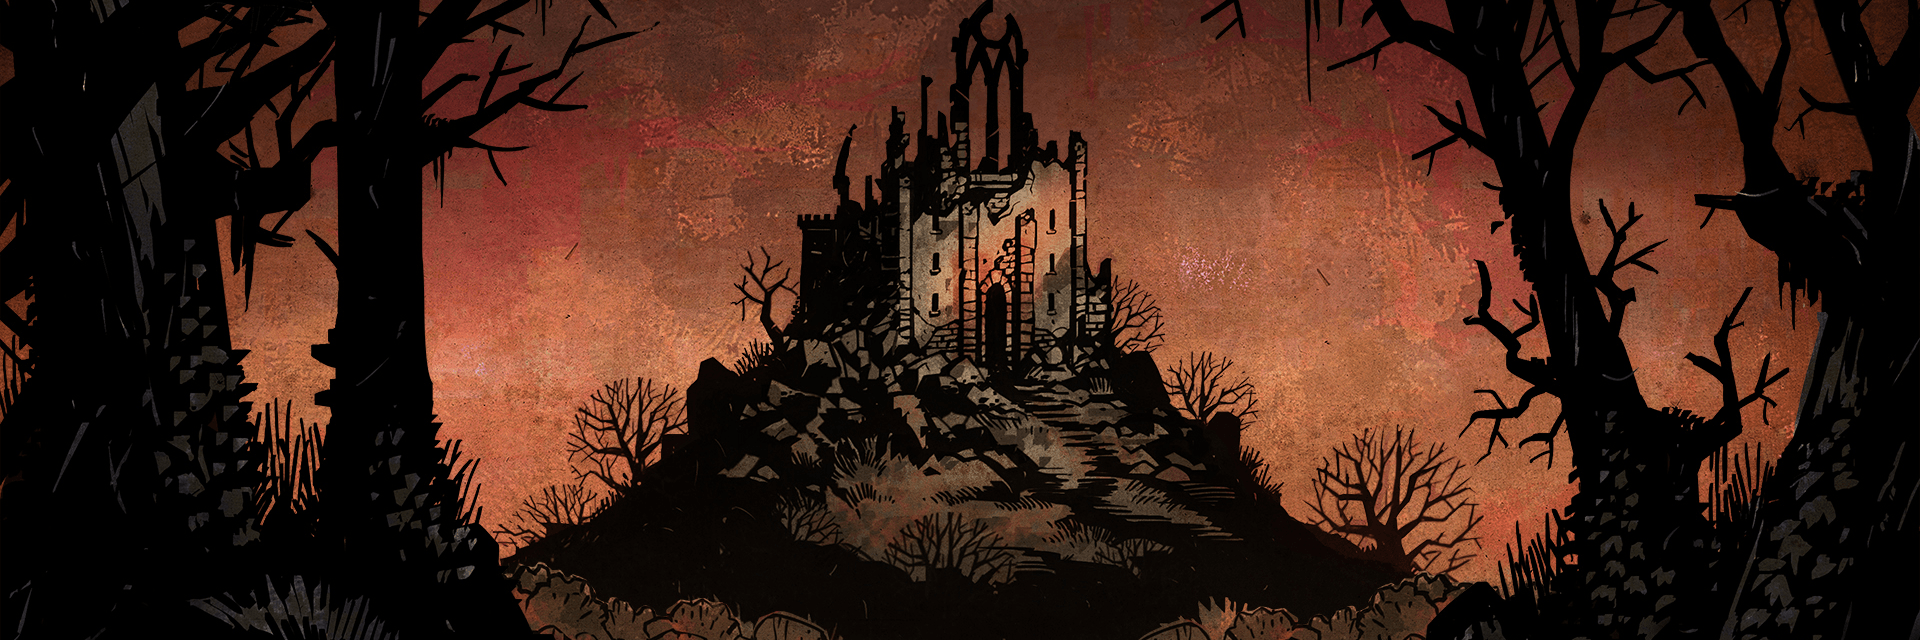 Mi verano en Darkest Dungeon